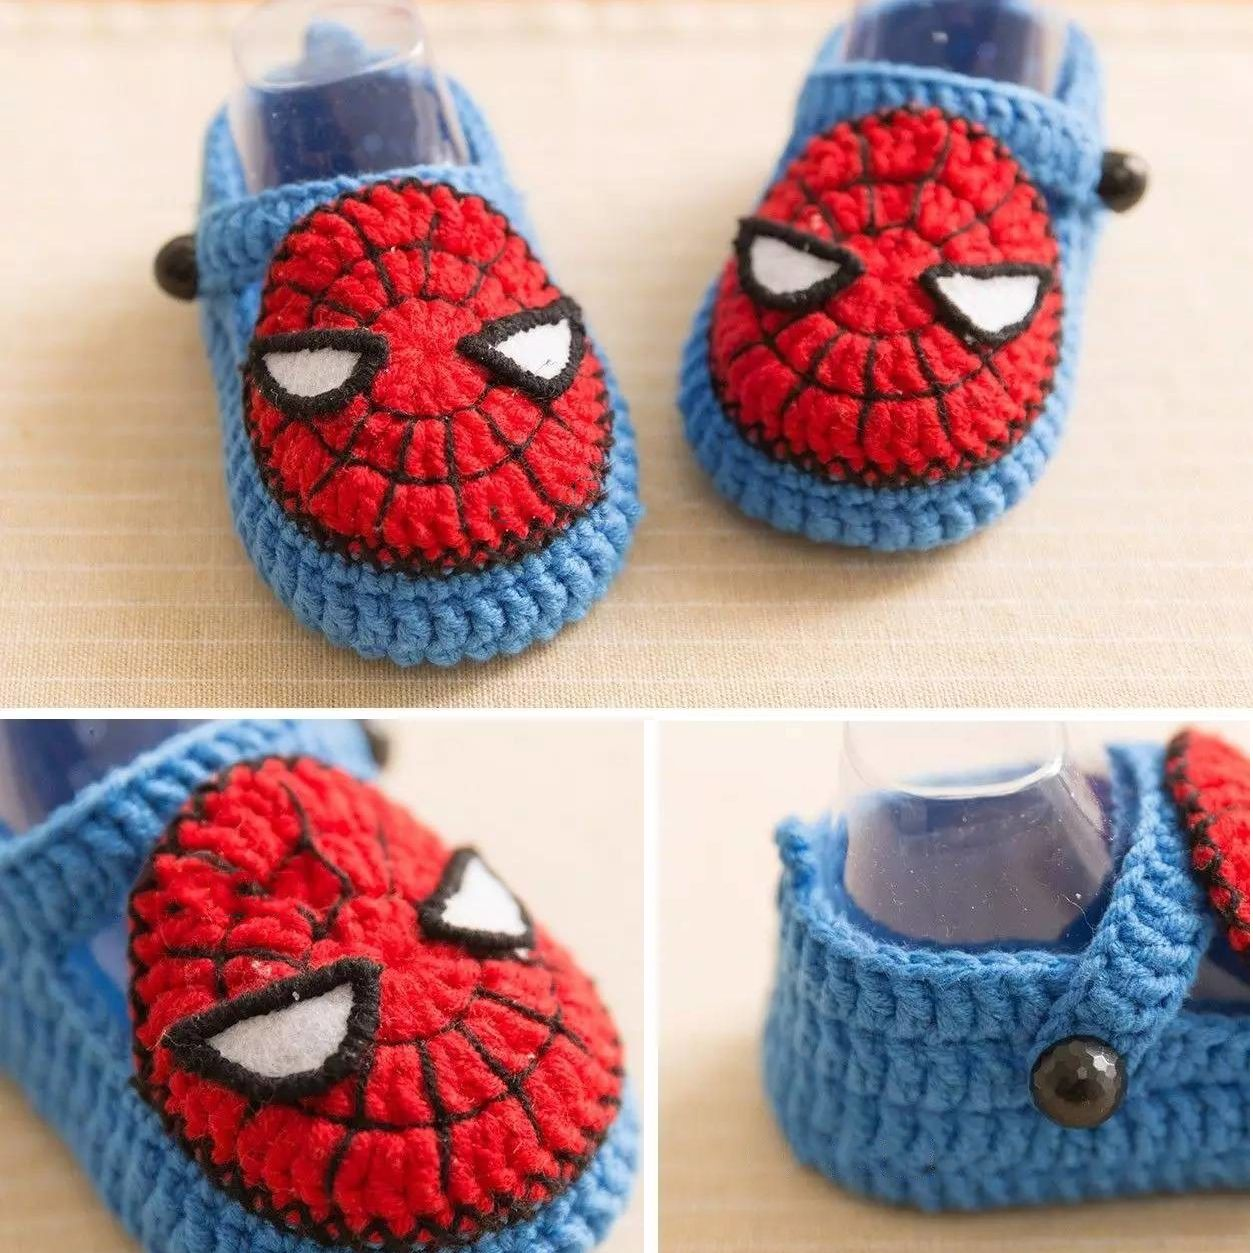 Spider man baby booties crochet | Crochet hat | Pinterest | Botines ...